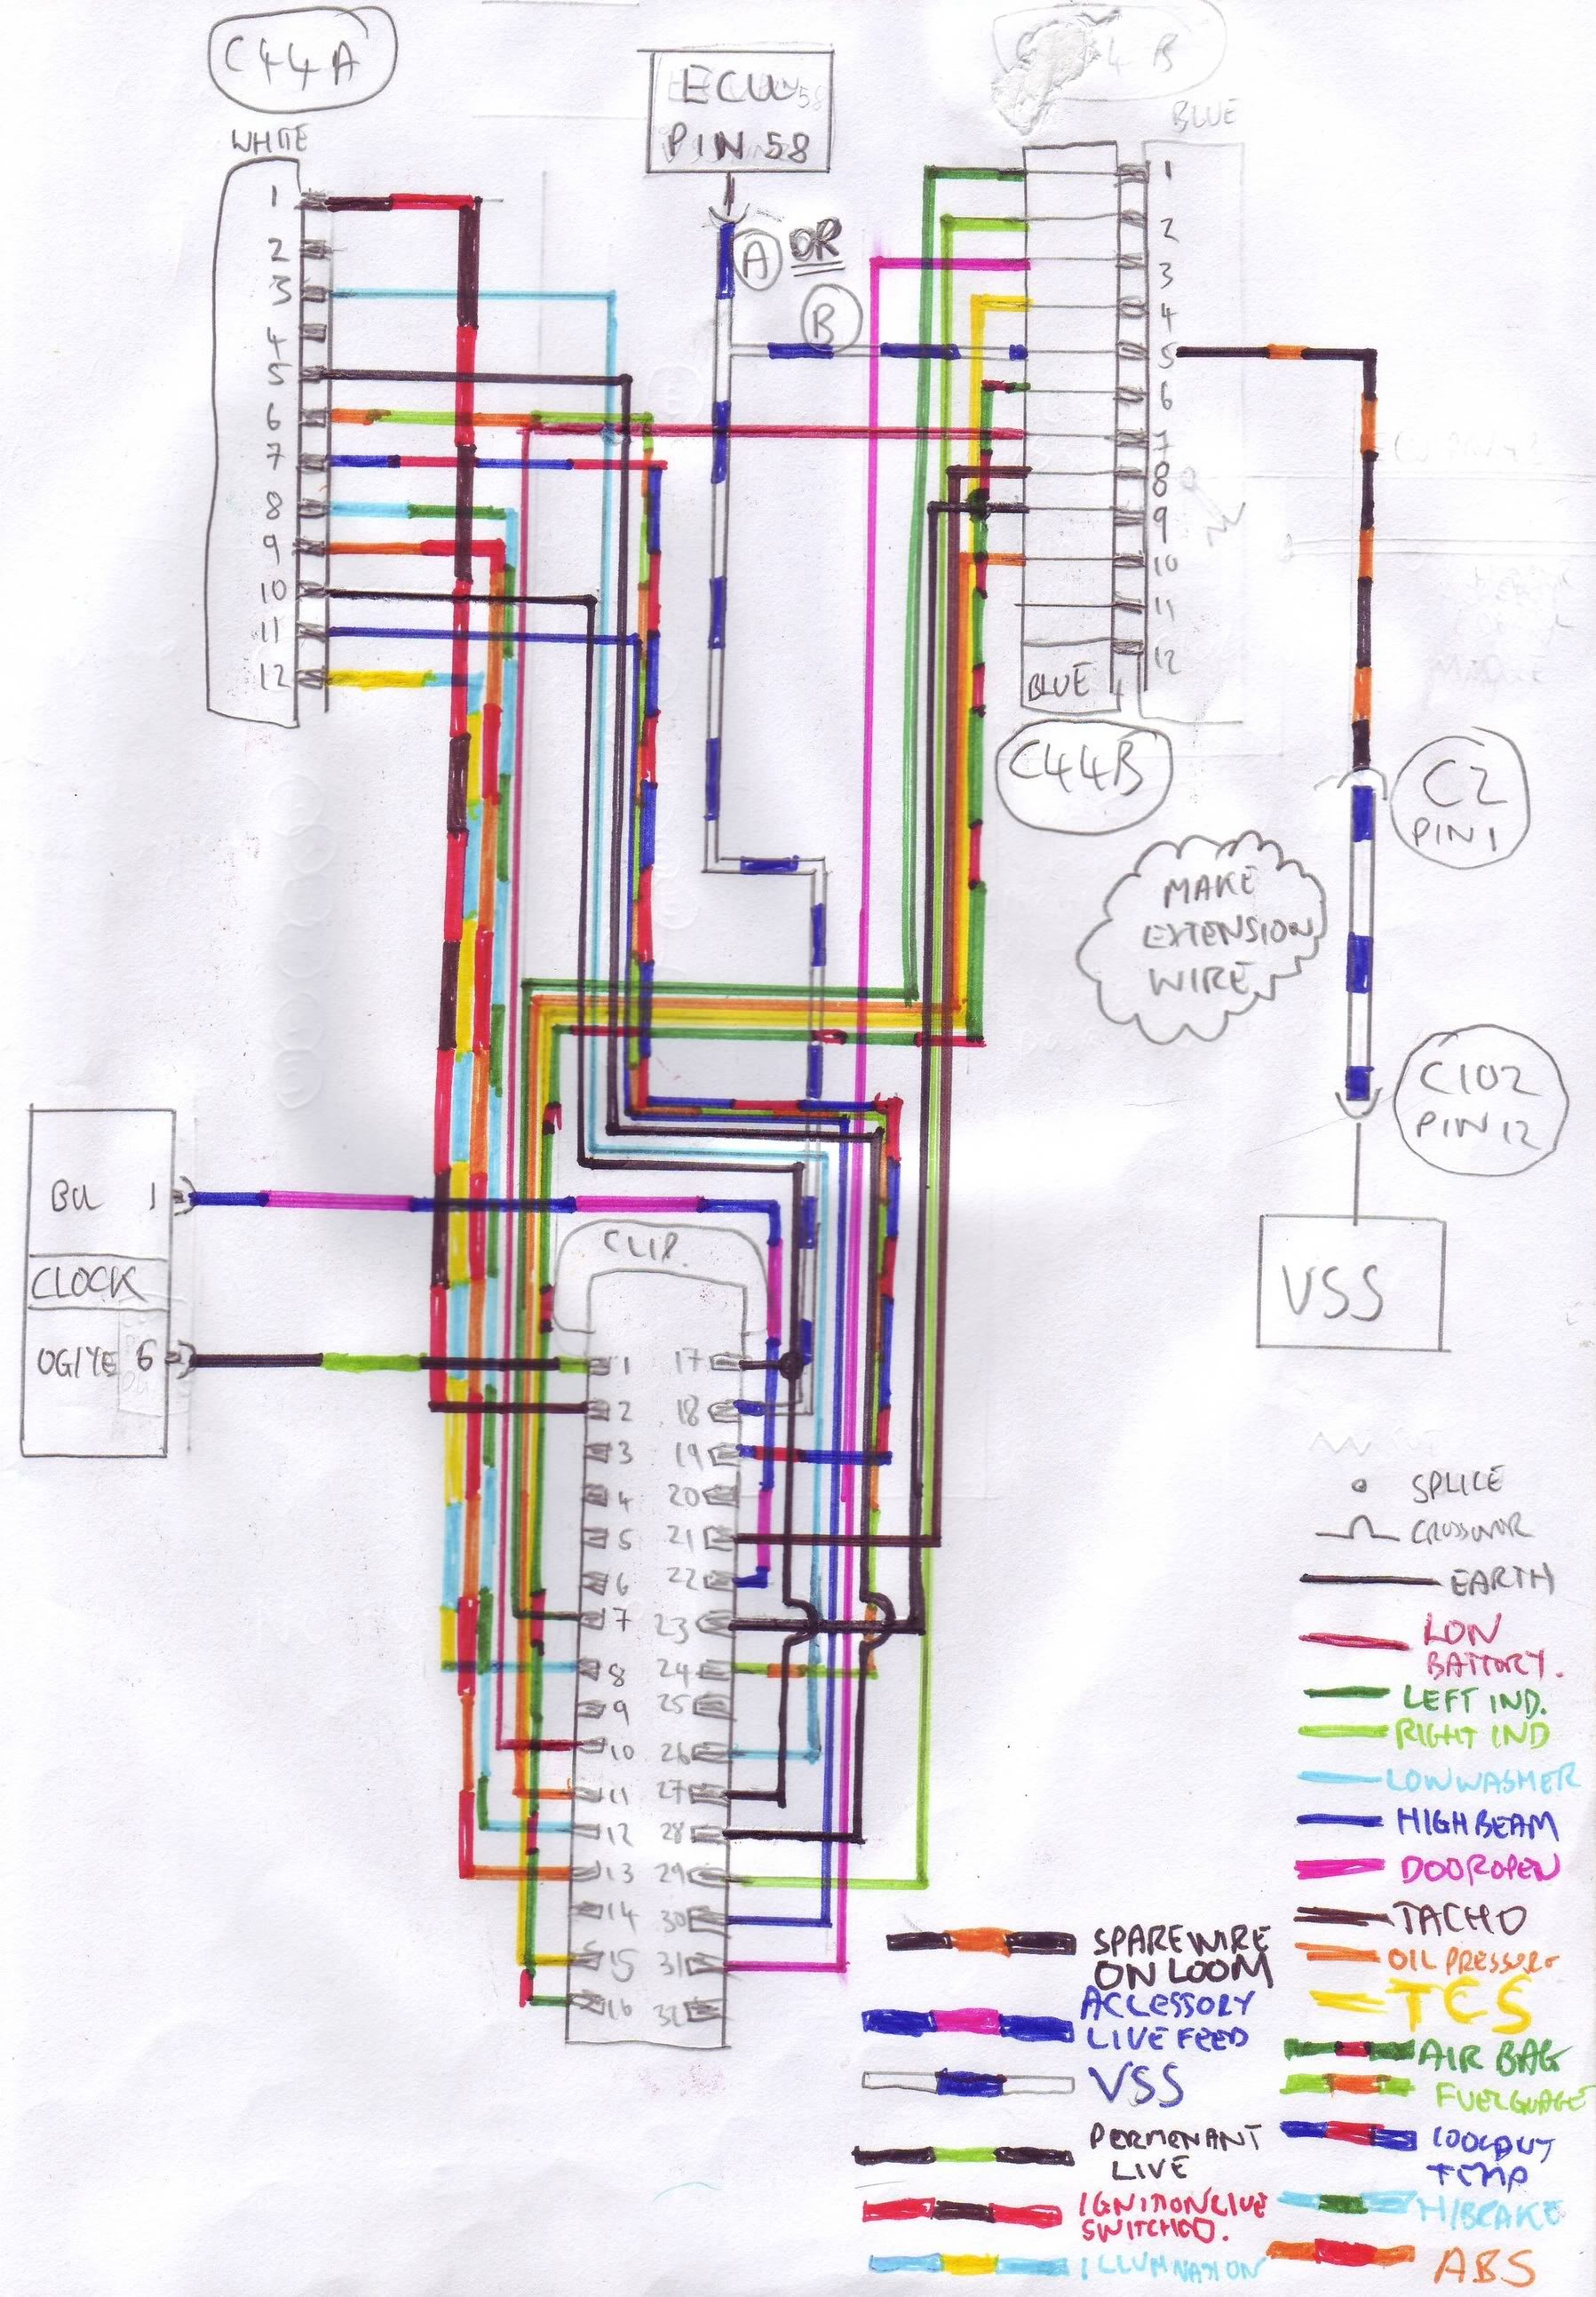 ford escort mk2 wiring diagram uml use case for library management system puma cosworth restoration bodge job fix page 3